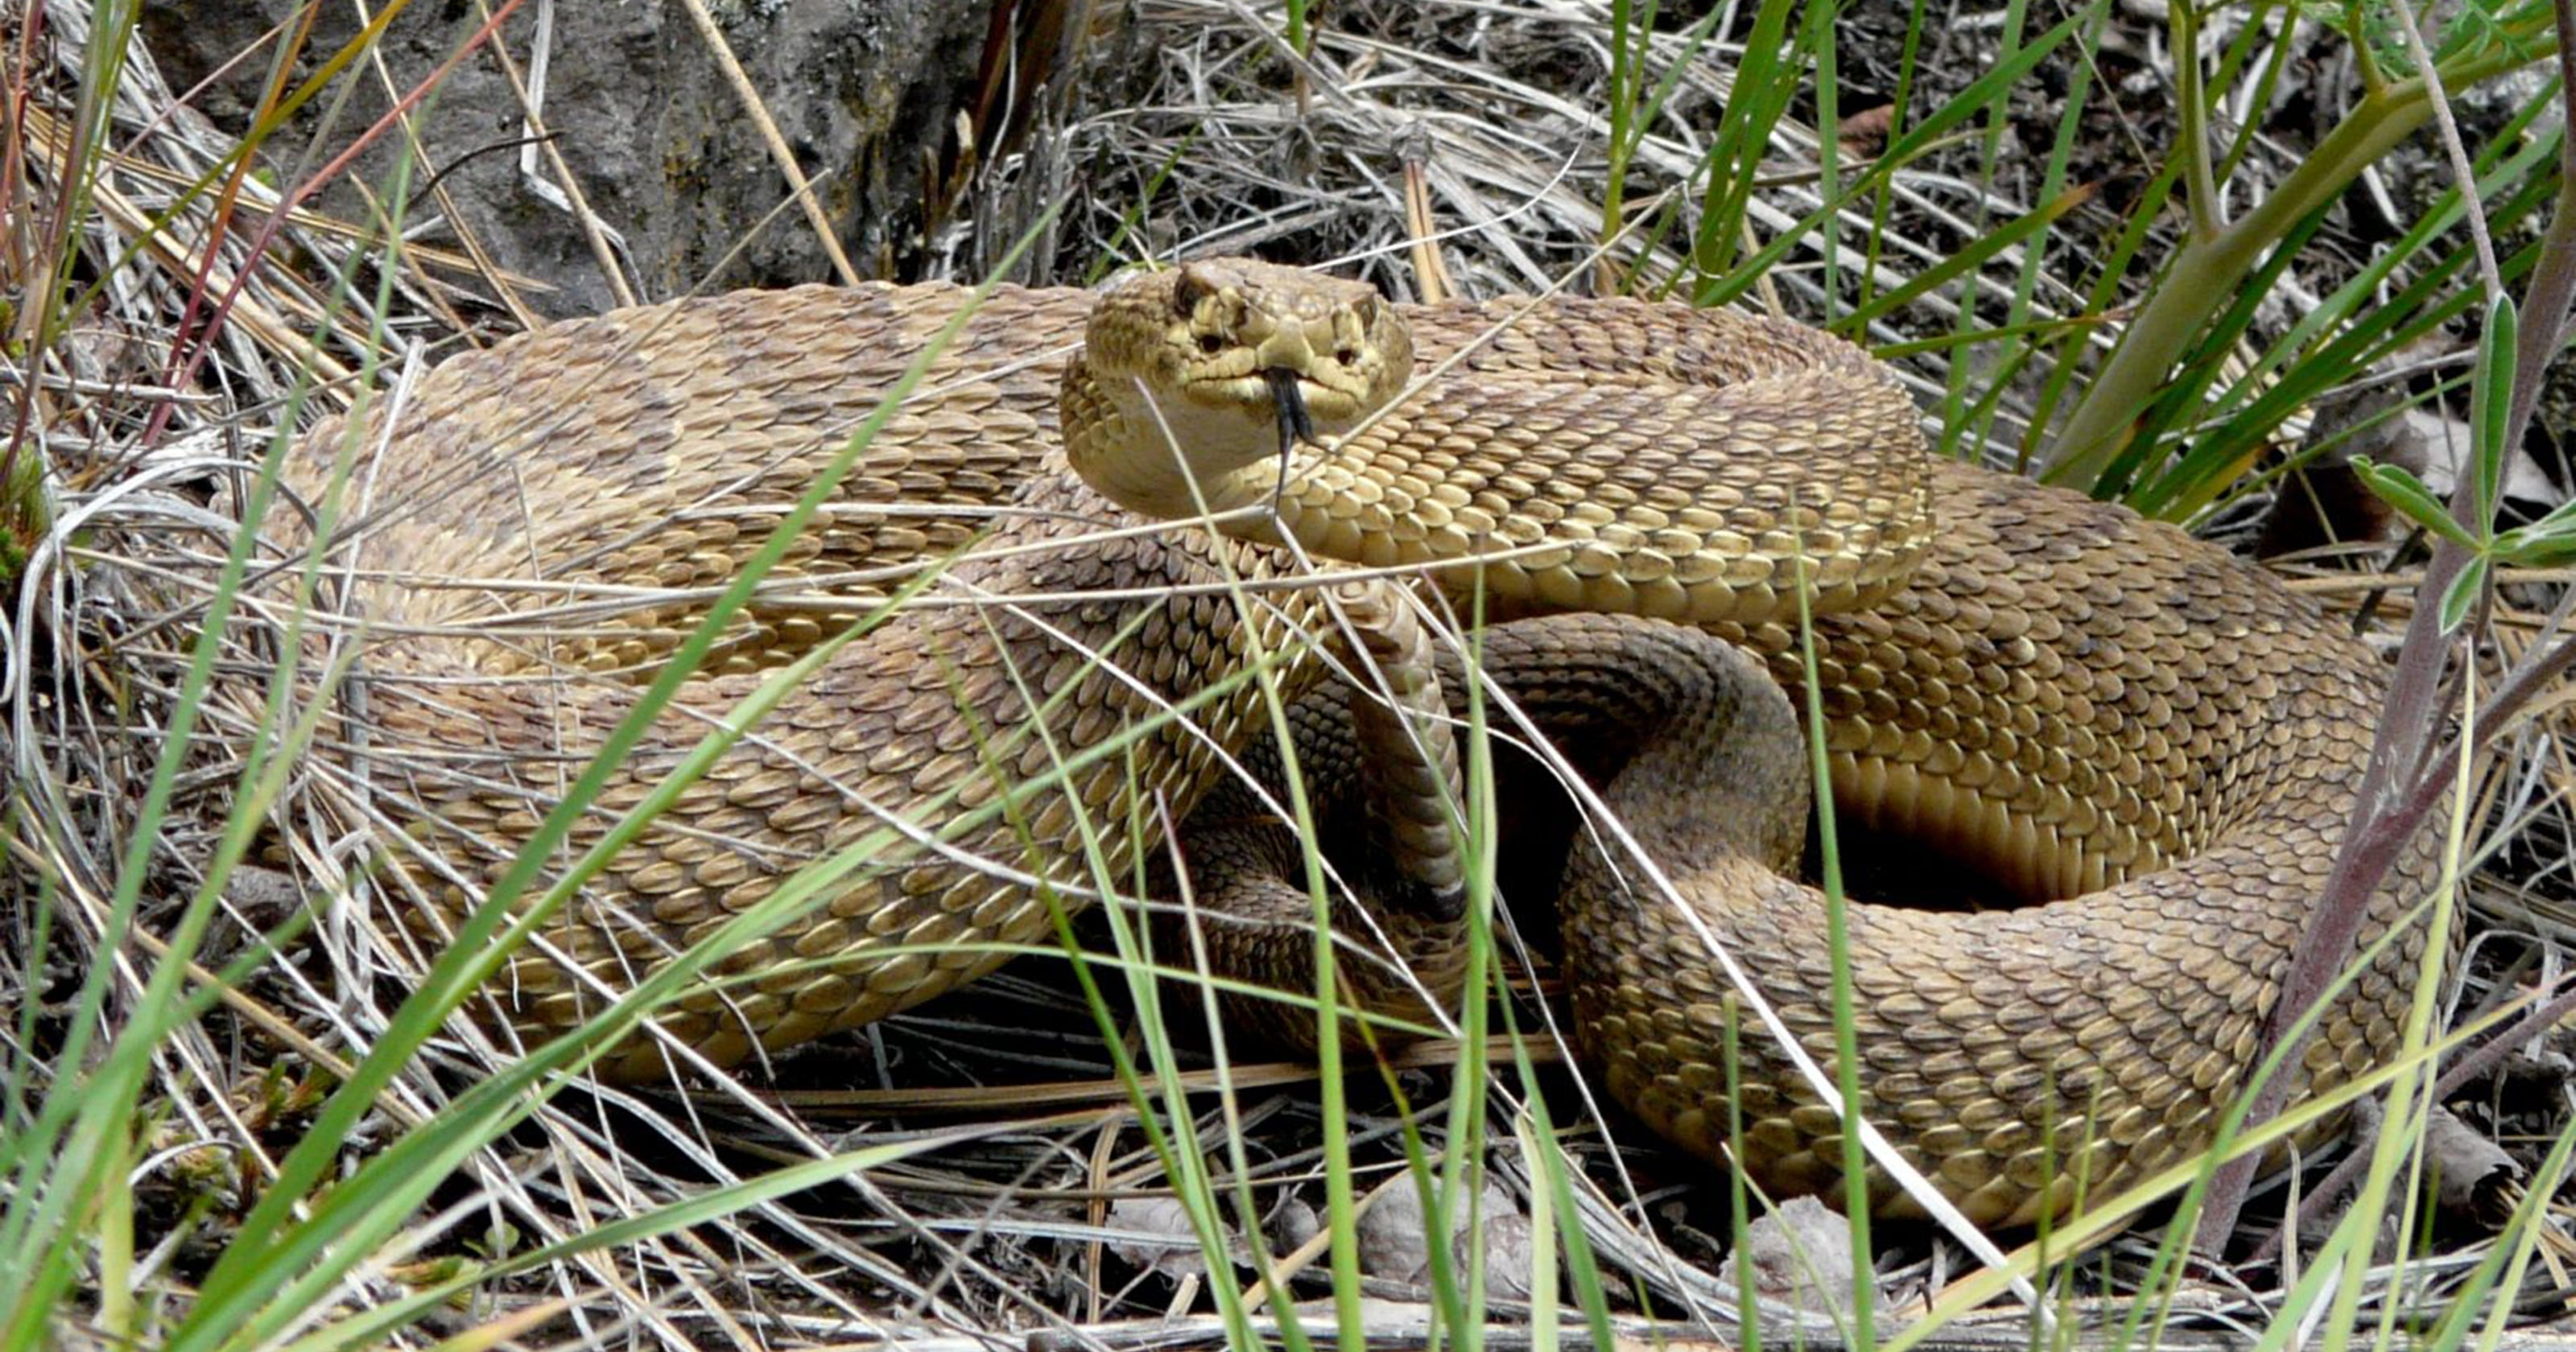 Rattlesnakes hiding under bushes, rock ledges in heat can surprise you